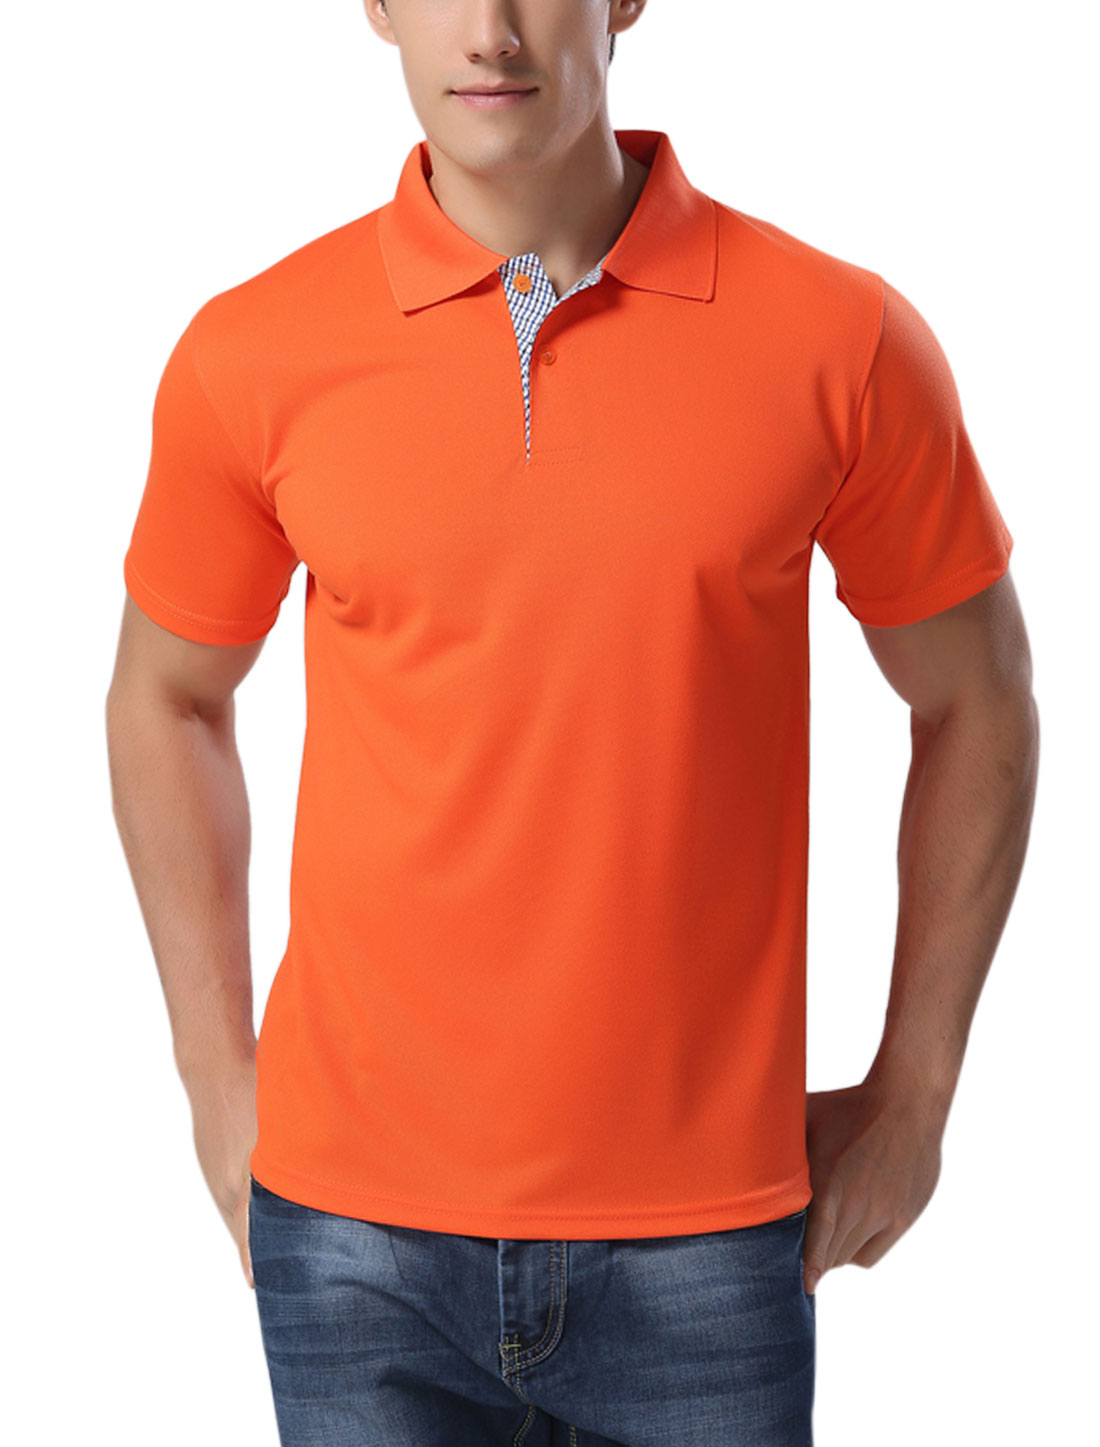 Men Point Collar Button Upper Casual Polo Shirts Orange M